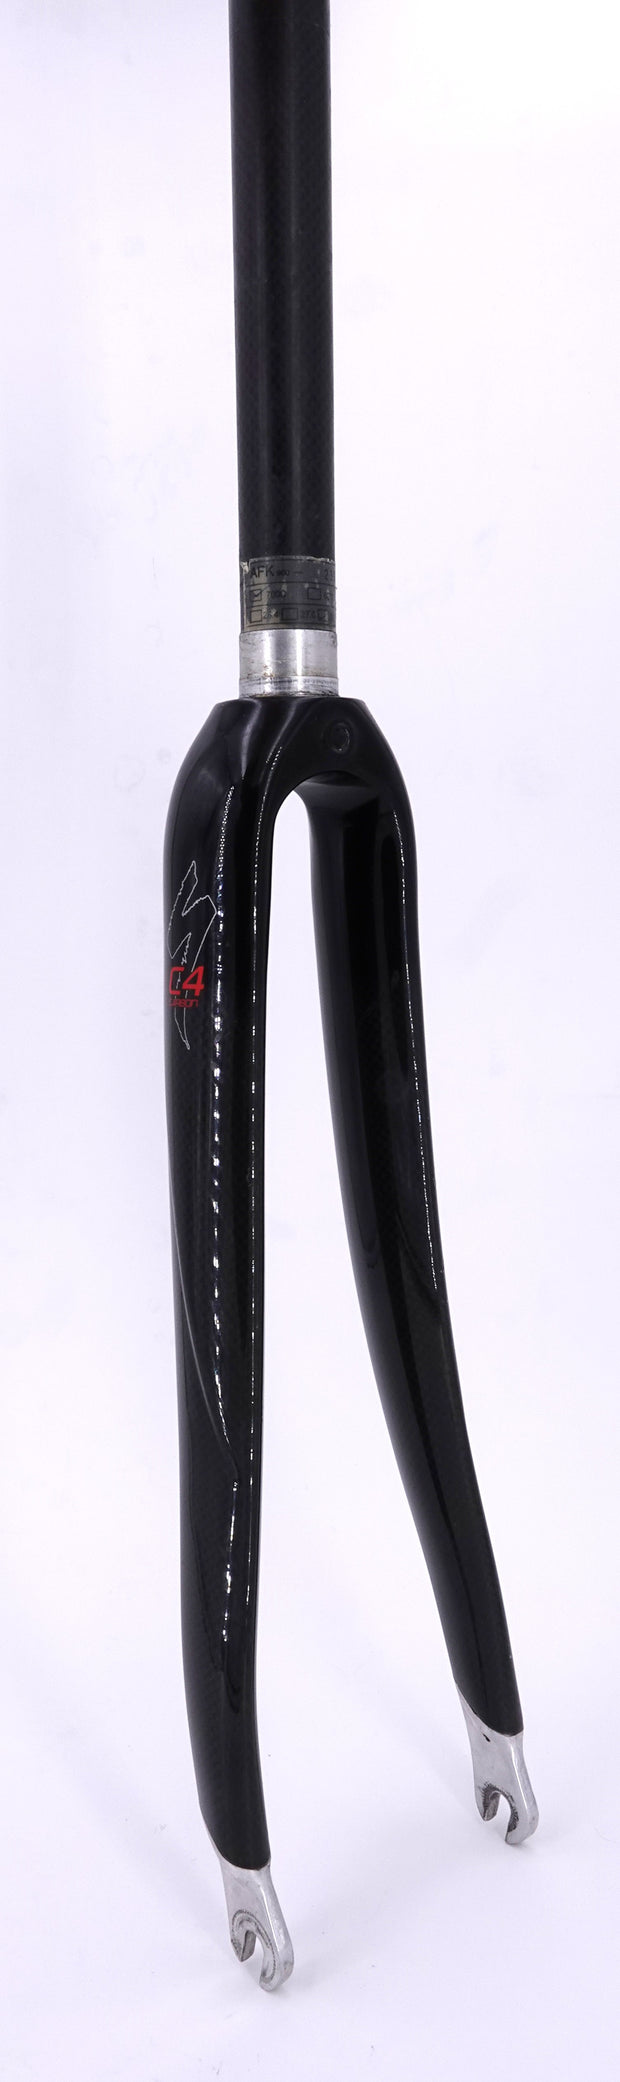 Specialized C4 Carbon 1-1/8in Road Fork 700c 9mm